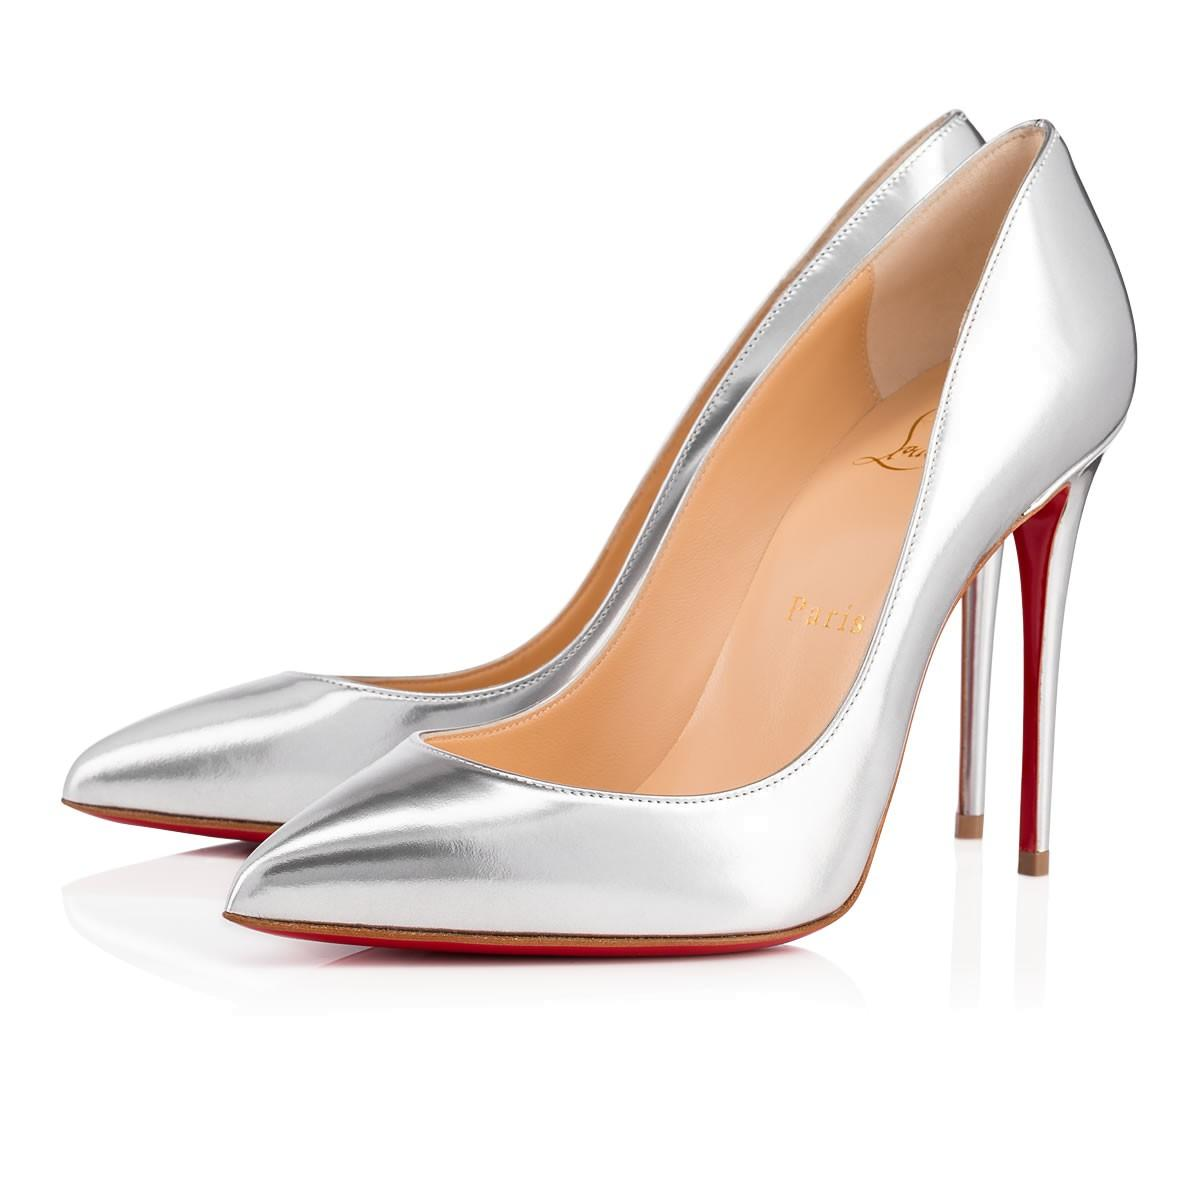 06495ad0a611 Christian Louboutin Pigalle Follies Pump In Silver